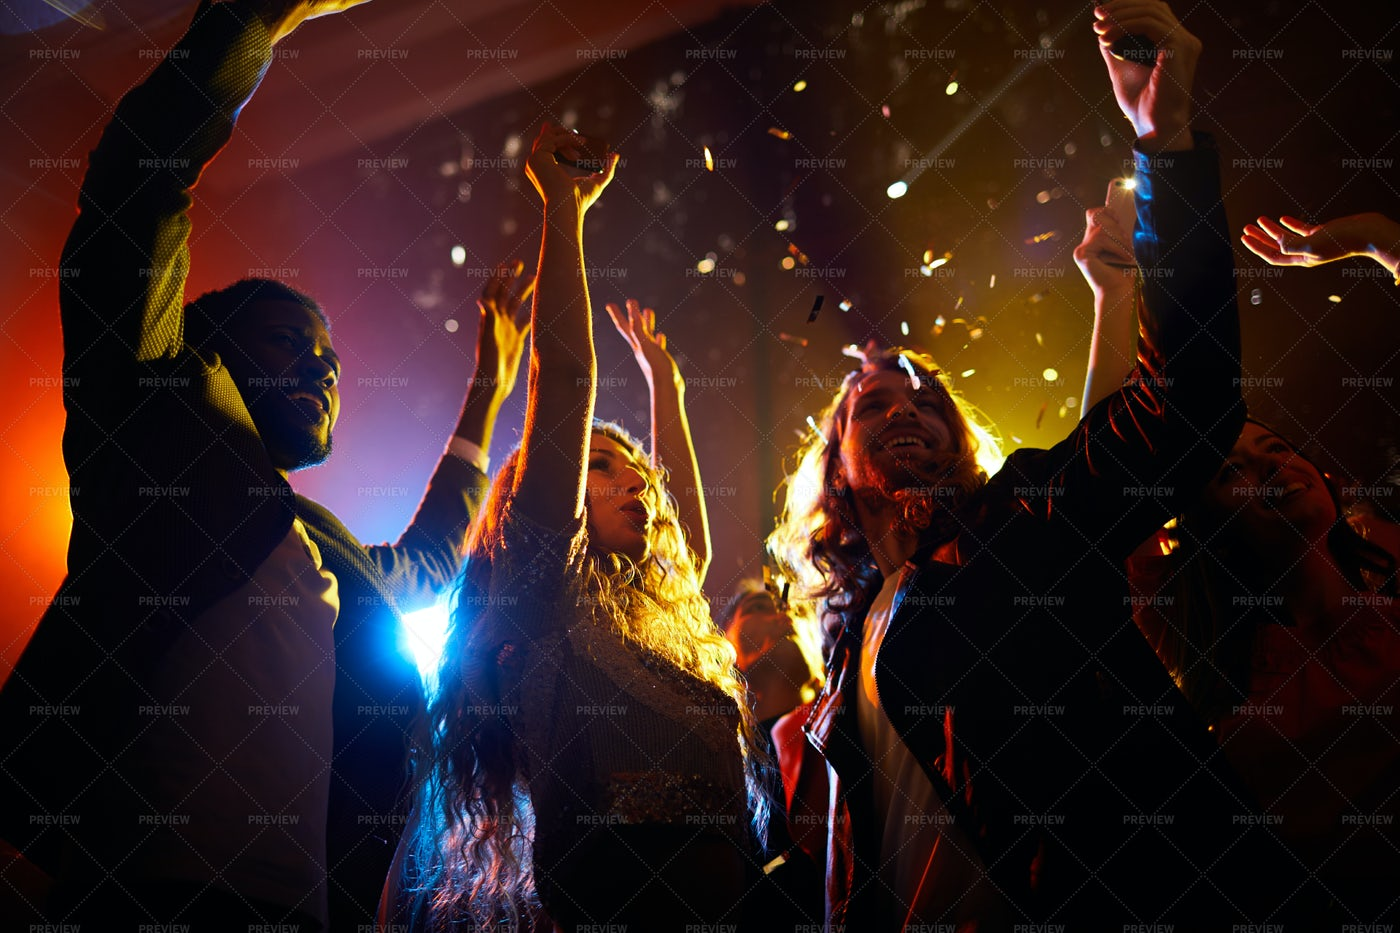 Excited People Dancing At Concert...: Stock Photos